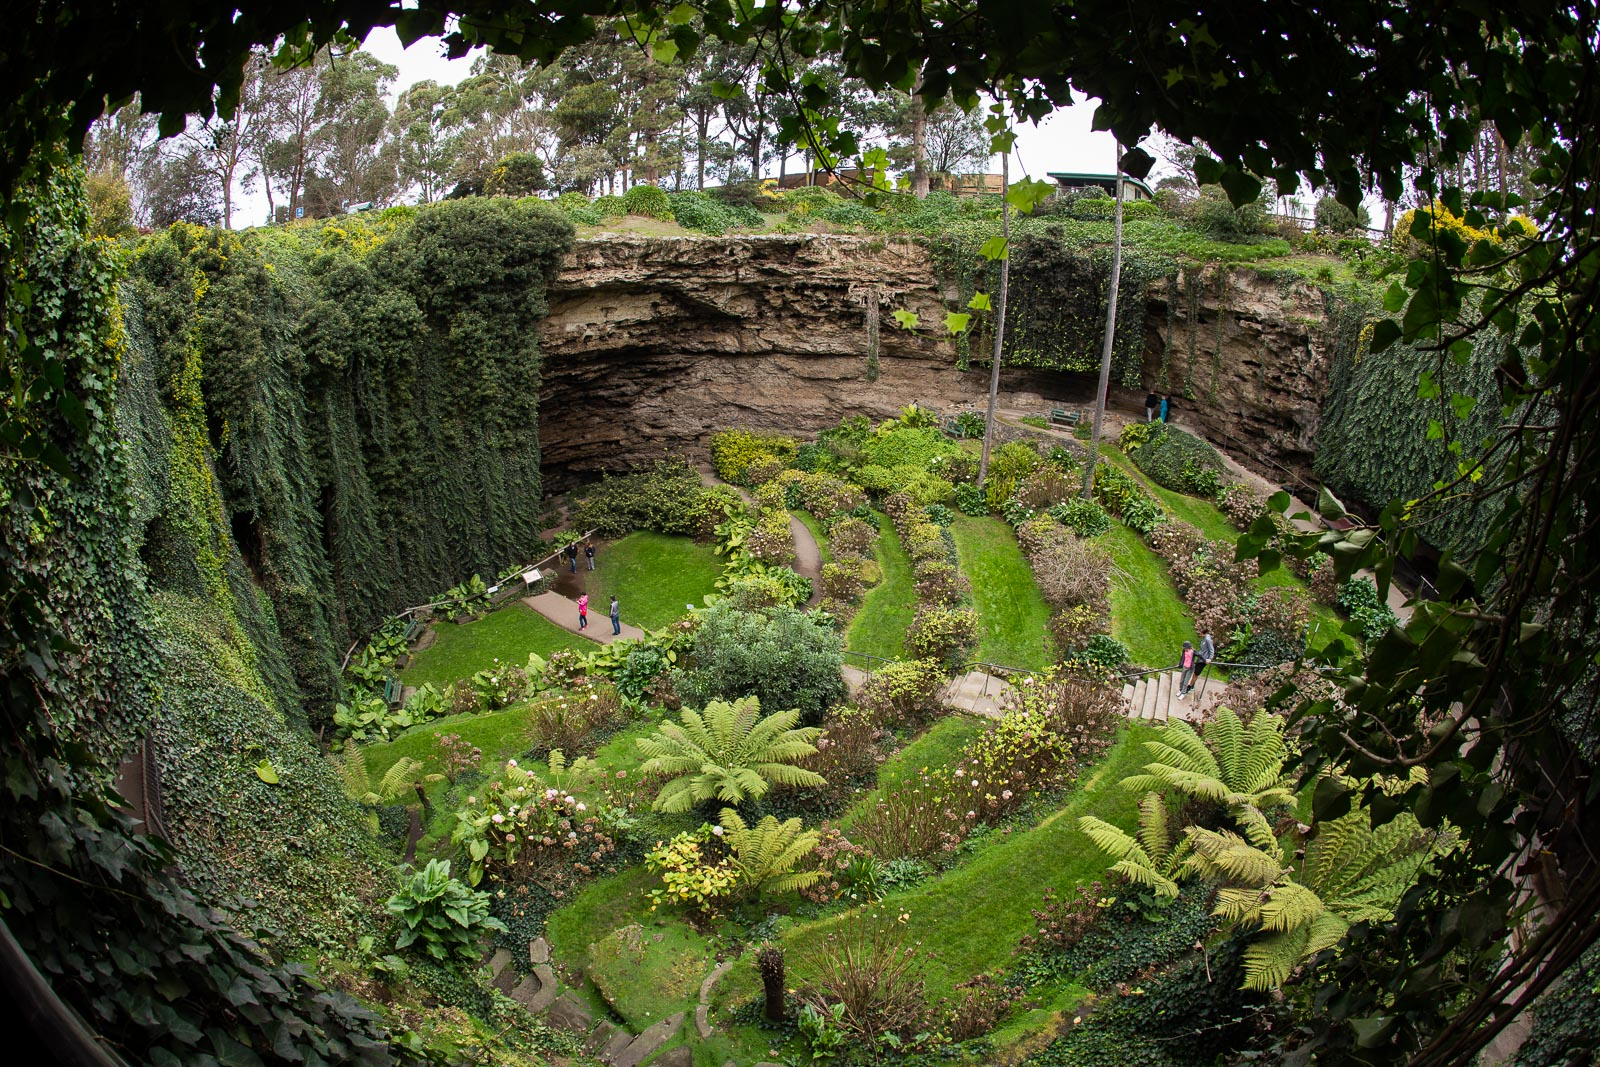 Umpherston Sinkhole Mount Gambier, South Australia | AusTravelPhotography